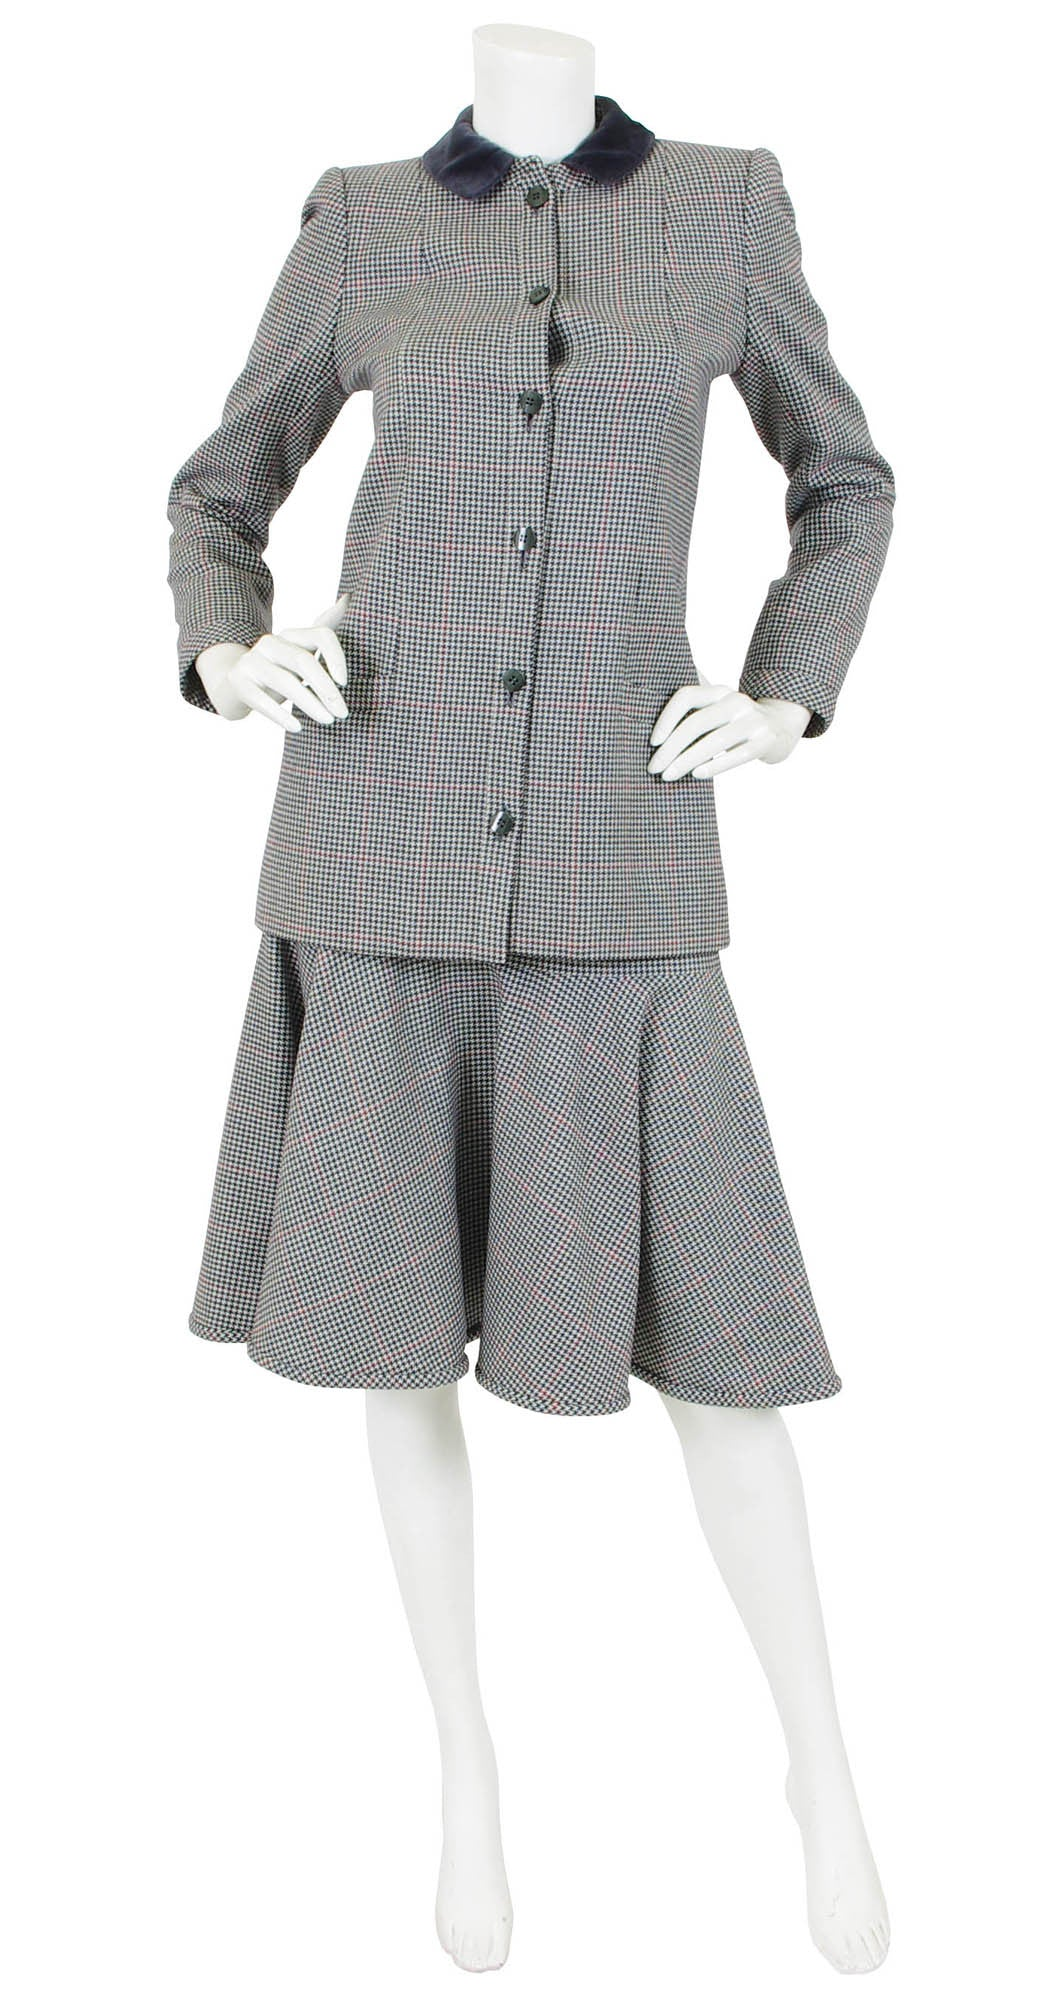 c.1980 Grey Houndstooth Wool Skirt Suit